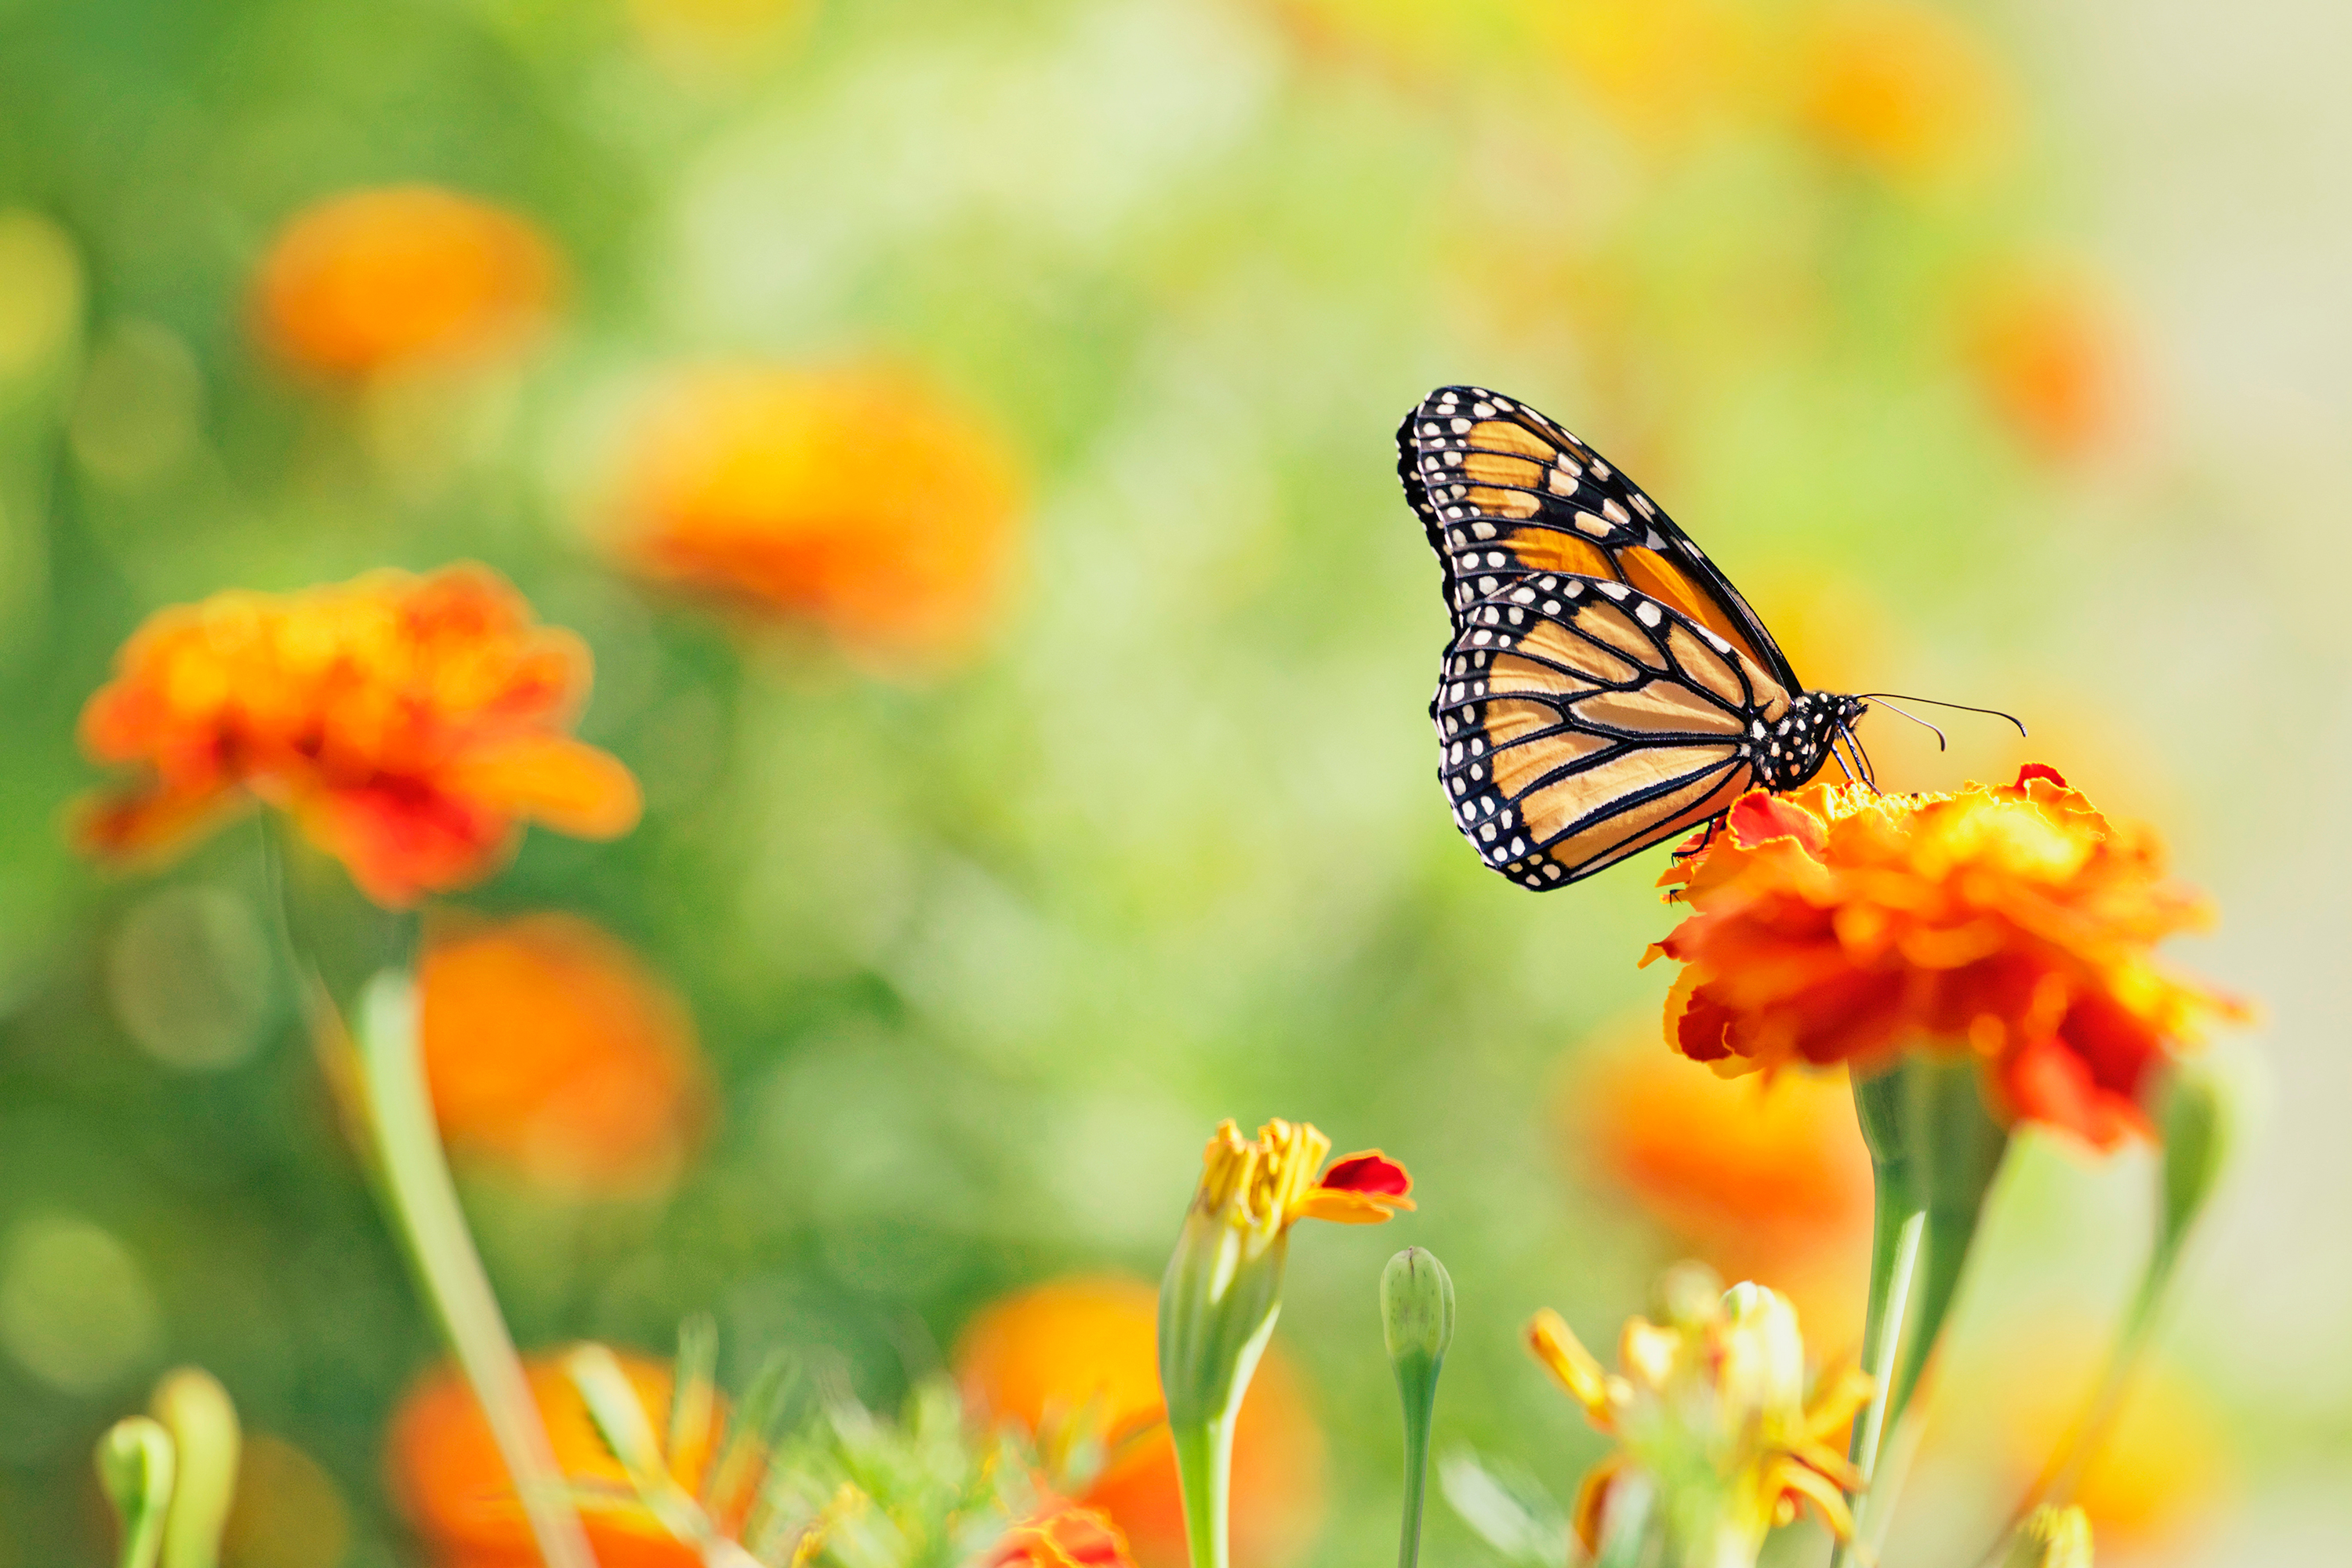 Snap a Photo and You Can Help Researchers Track Monarch Butterflies